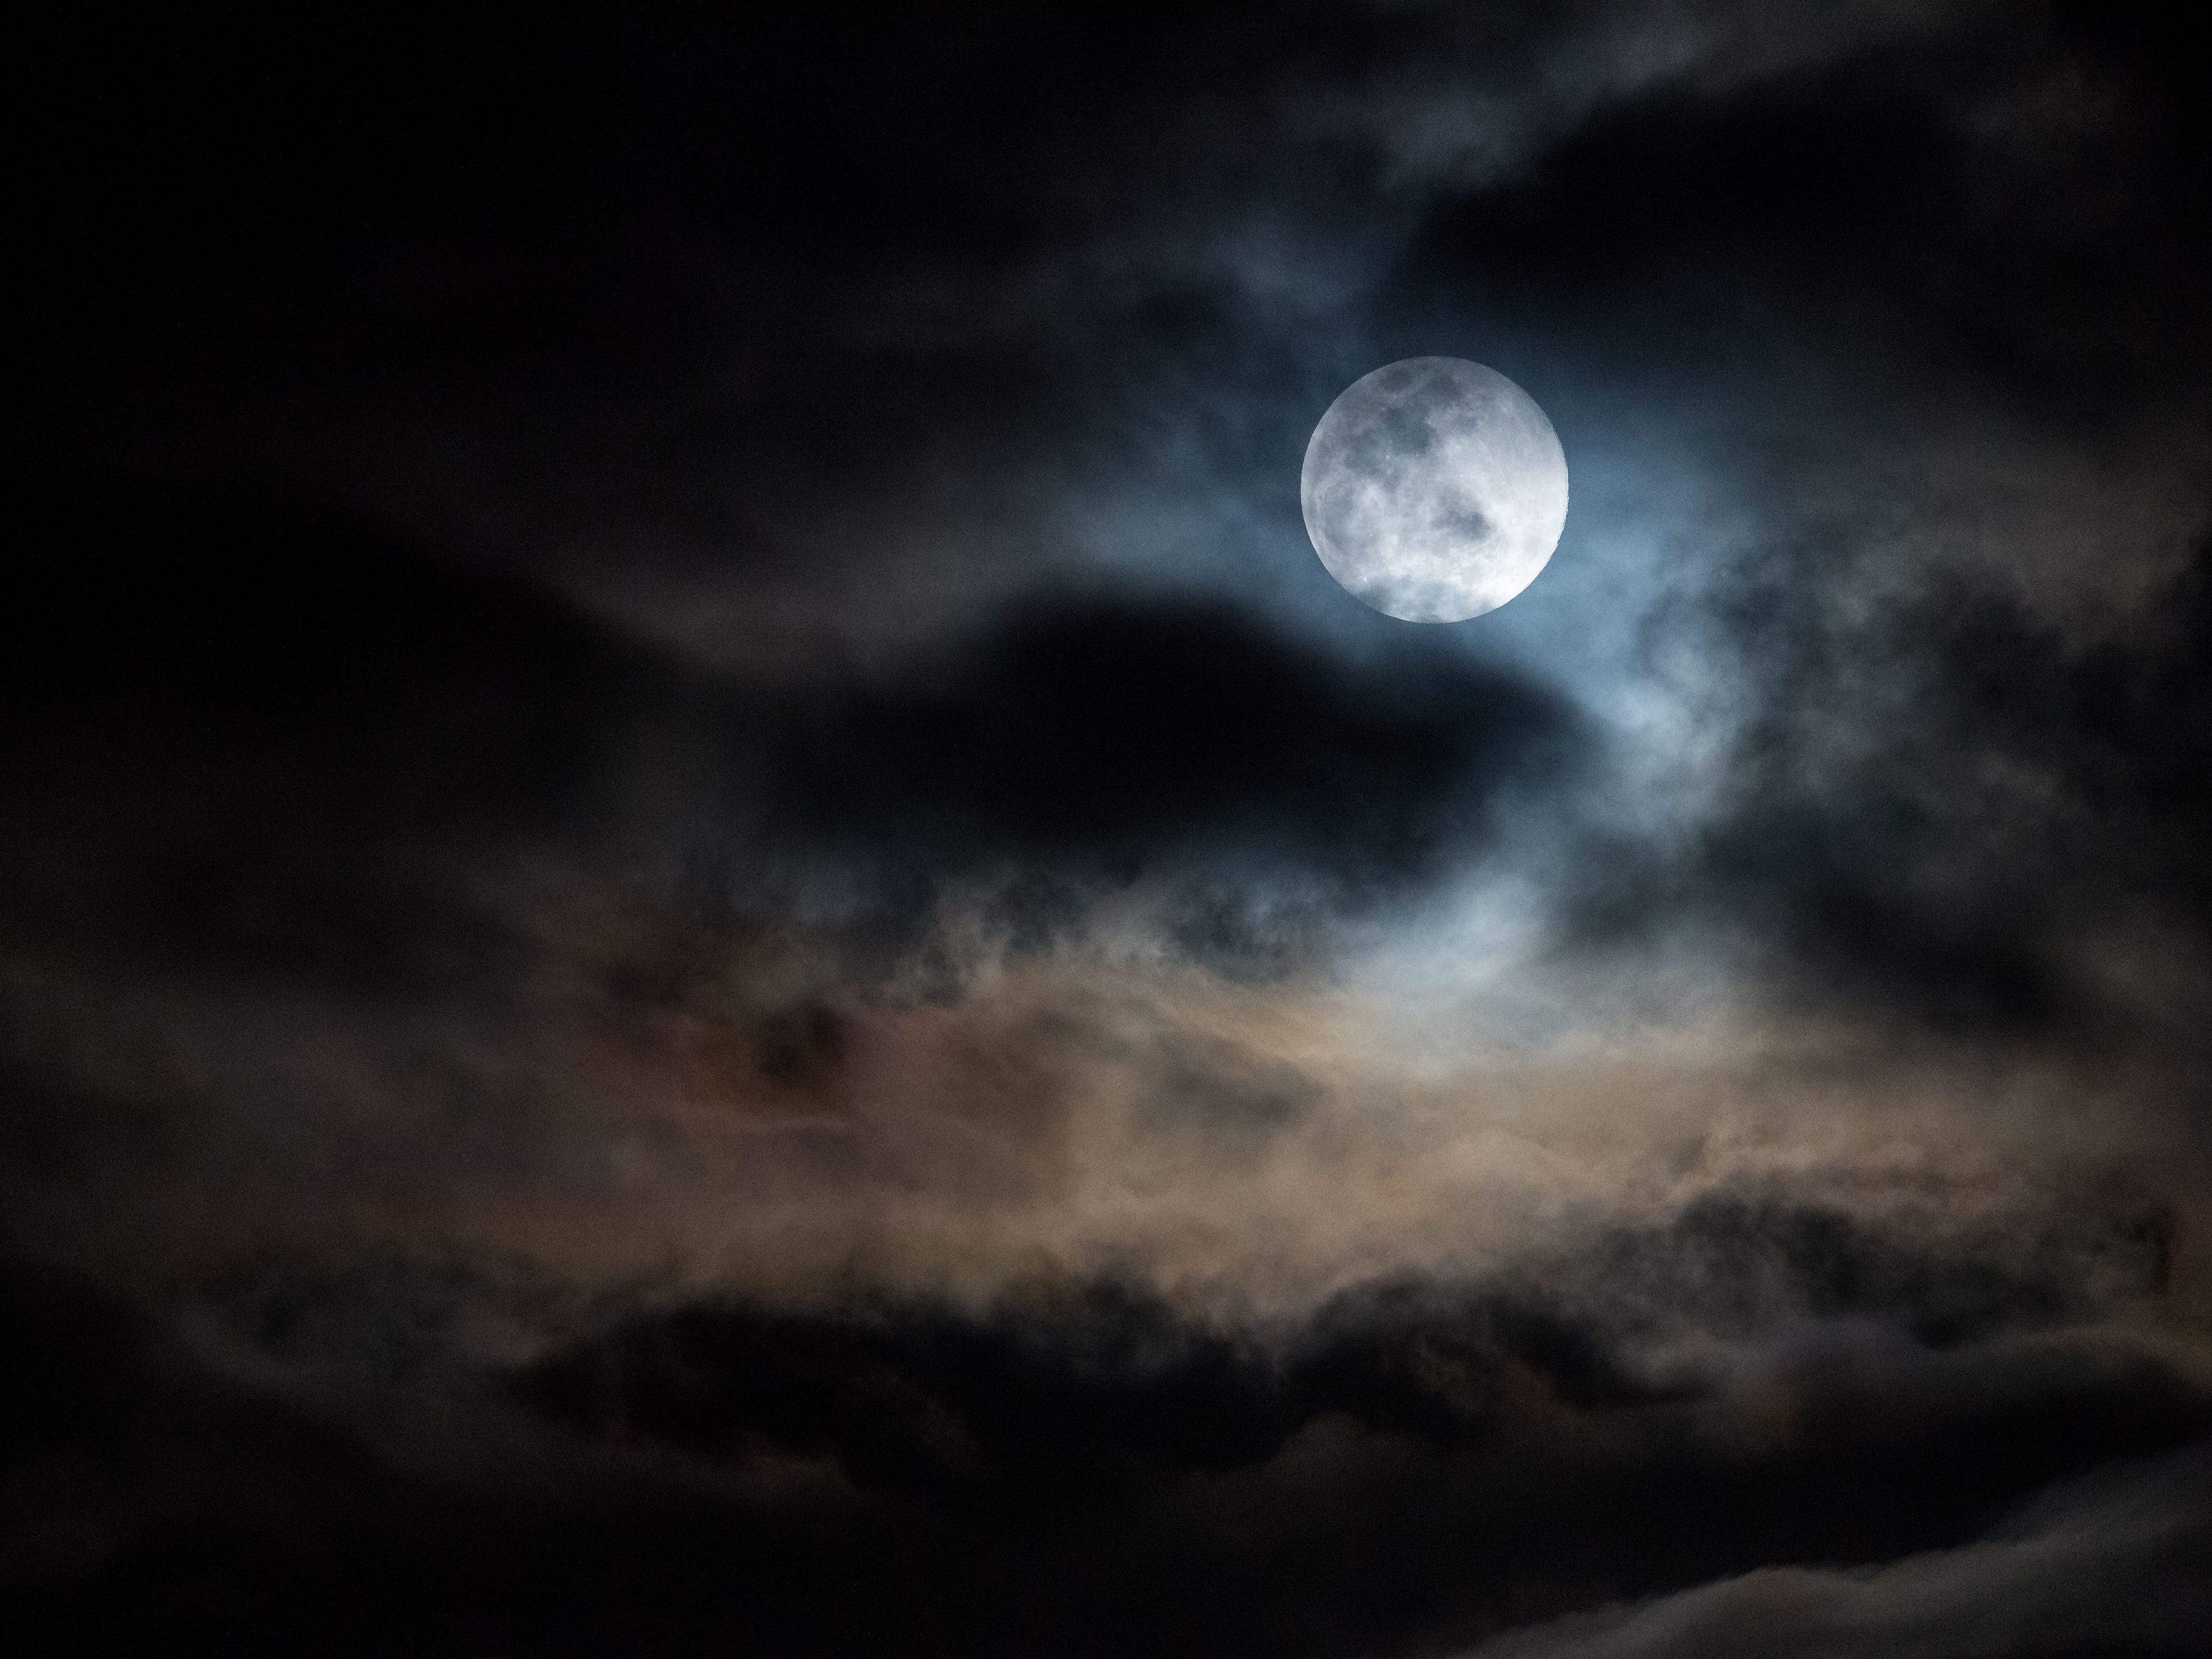 """The last supermoon of 2019, the """"super worm equinox moon,"""" makes an appearance though an overcast night sky on the vernal equinox Wednesday, March 20, 2019, as seen from Jensen Beach. The next supermoon will not occur until March 2020."""